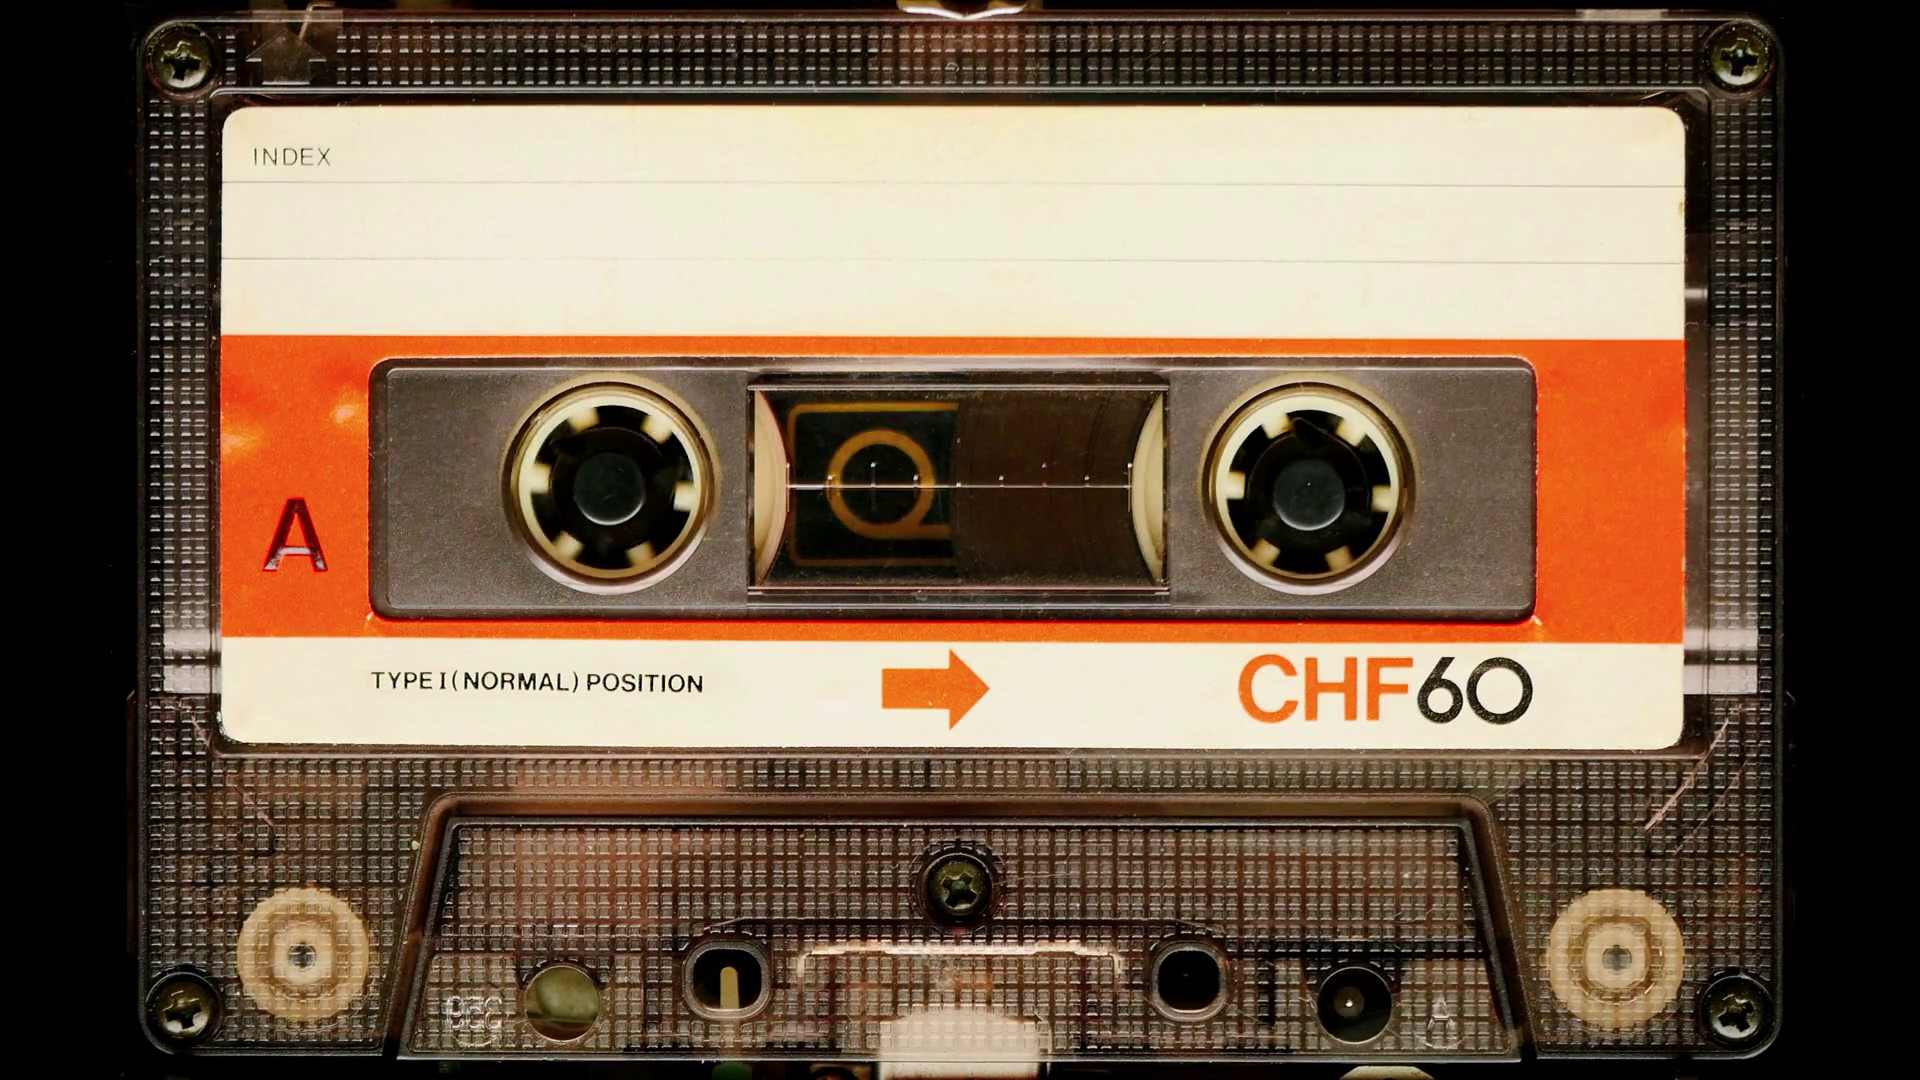 videoblocks-audio-cassette-tape-in-use-sound-recording-in-the-tape-recorder-vintage-music-cassette-with-a-blank-white-label-playing-back-in-the-player-4k-static-camera-shot_rq-2fbqq9x_th